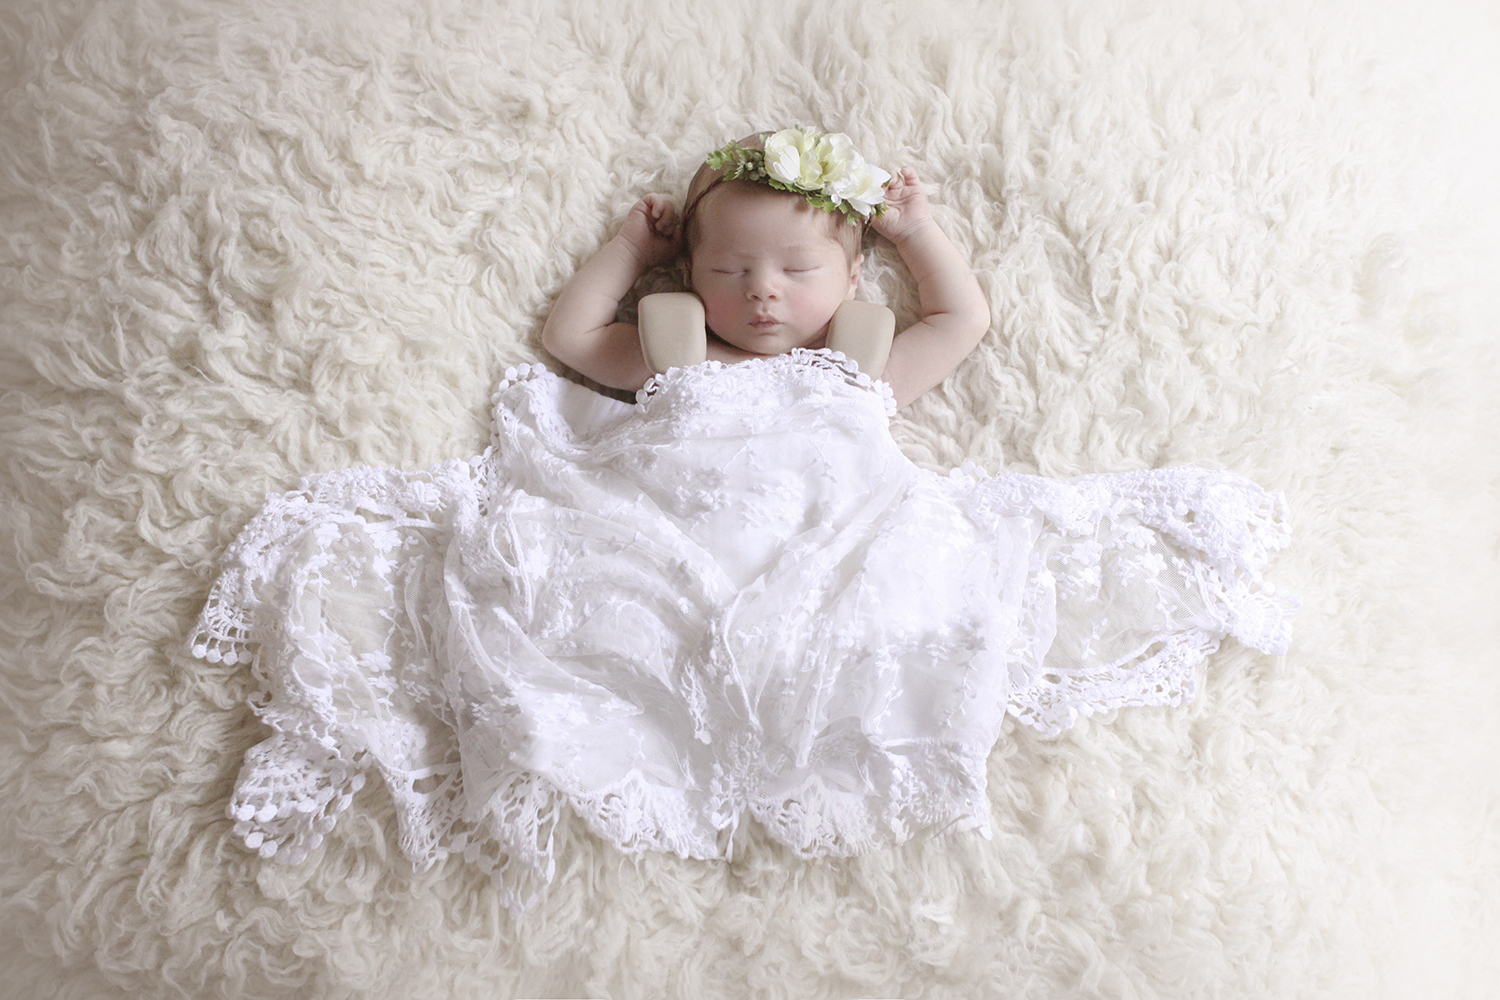 Newborn baby girl sleeping on cream fur with white lace wrap and flower halo